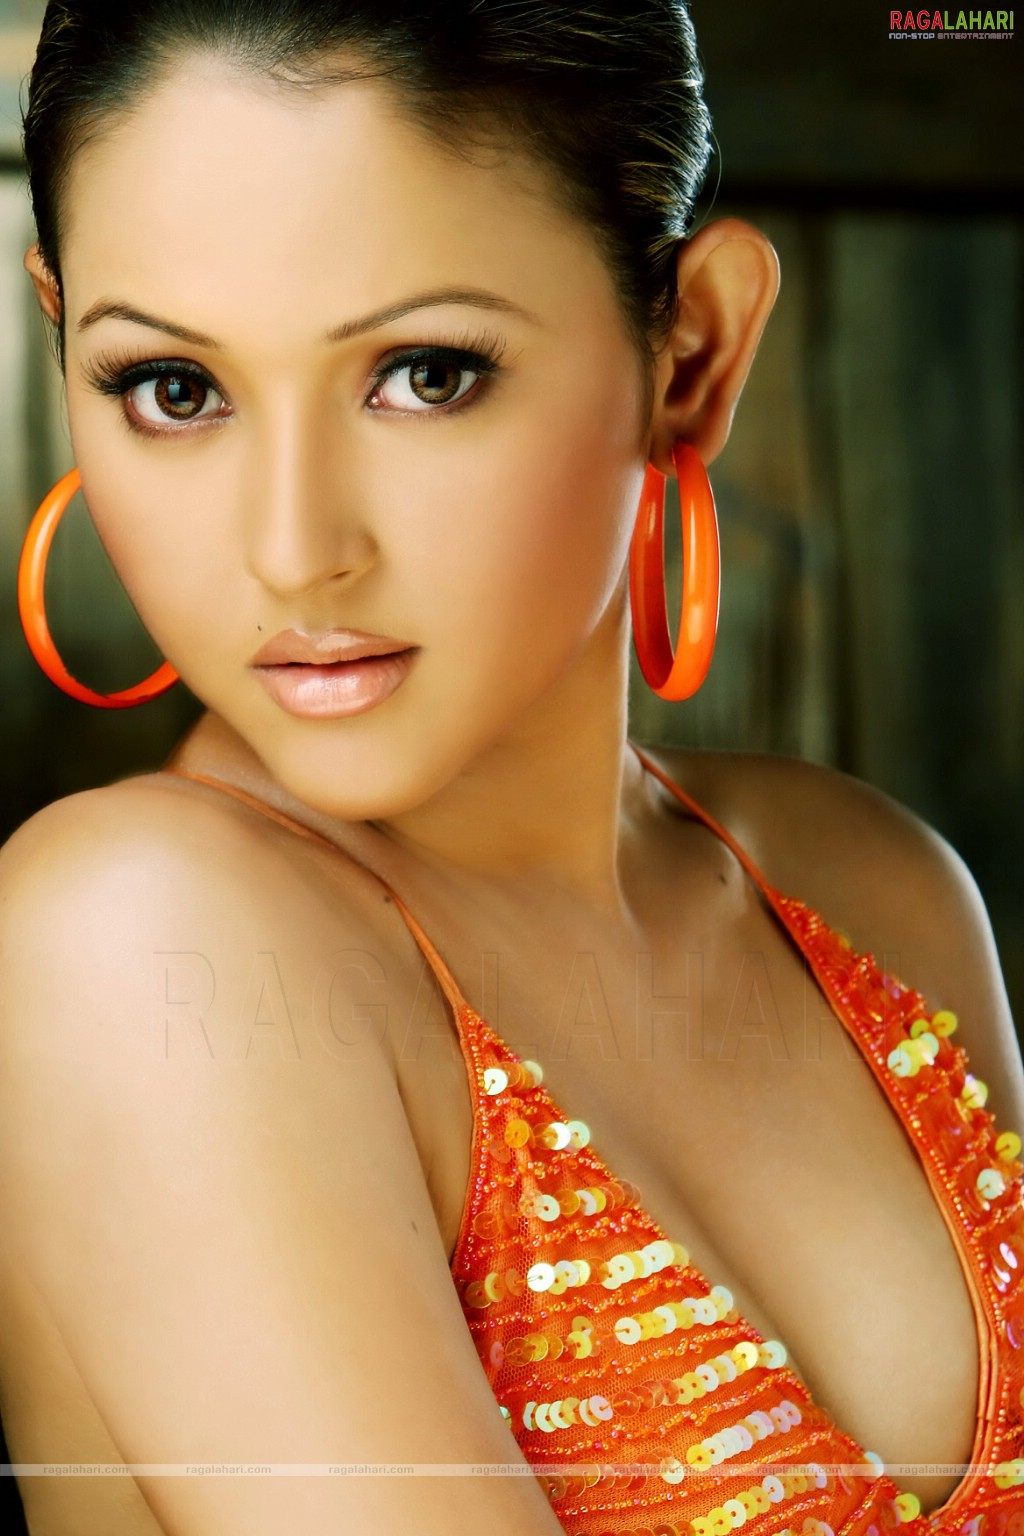 Very Cute Indian Girl Photo set 4 | Actress and Girls